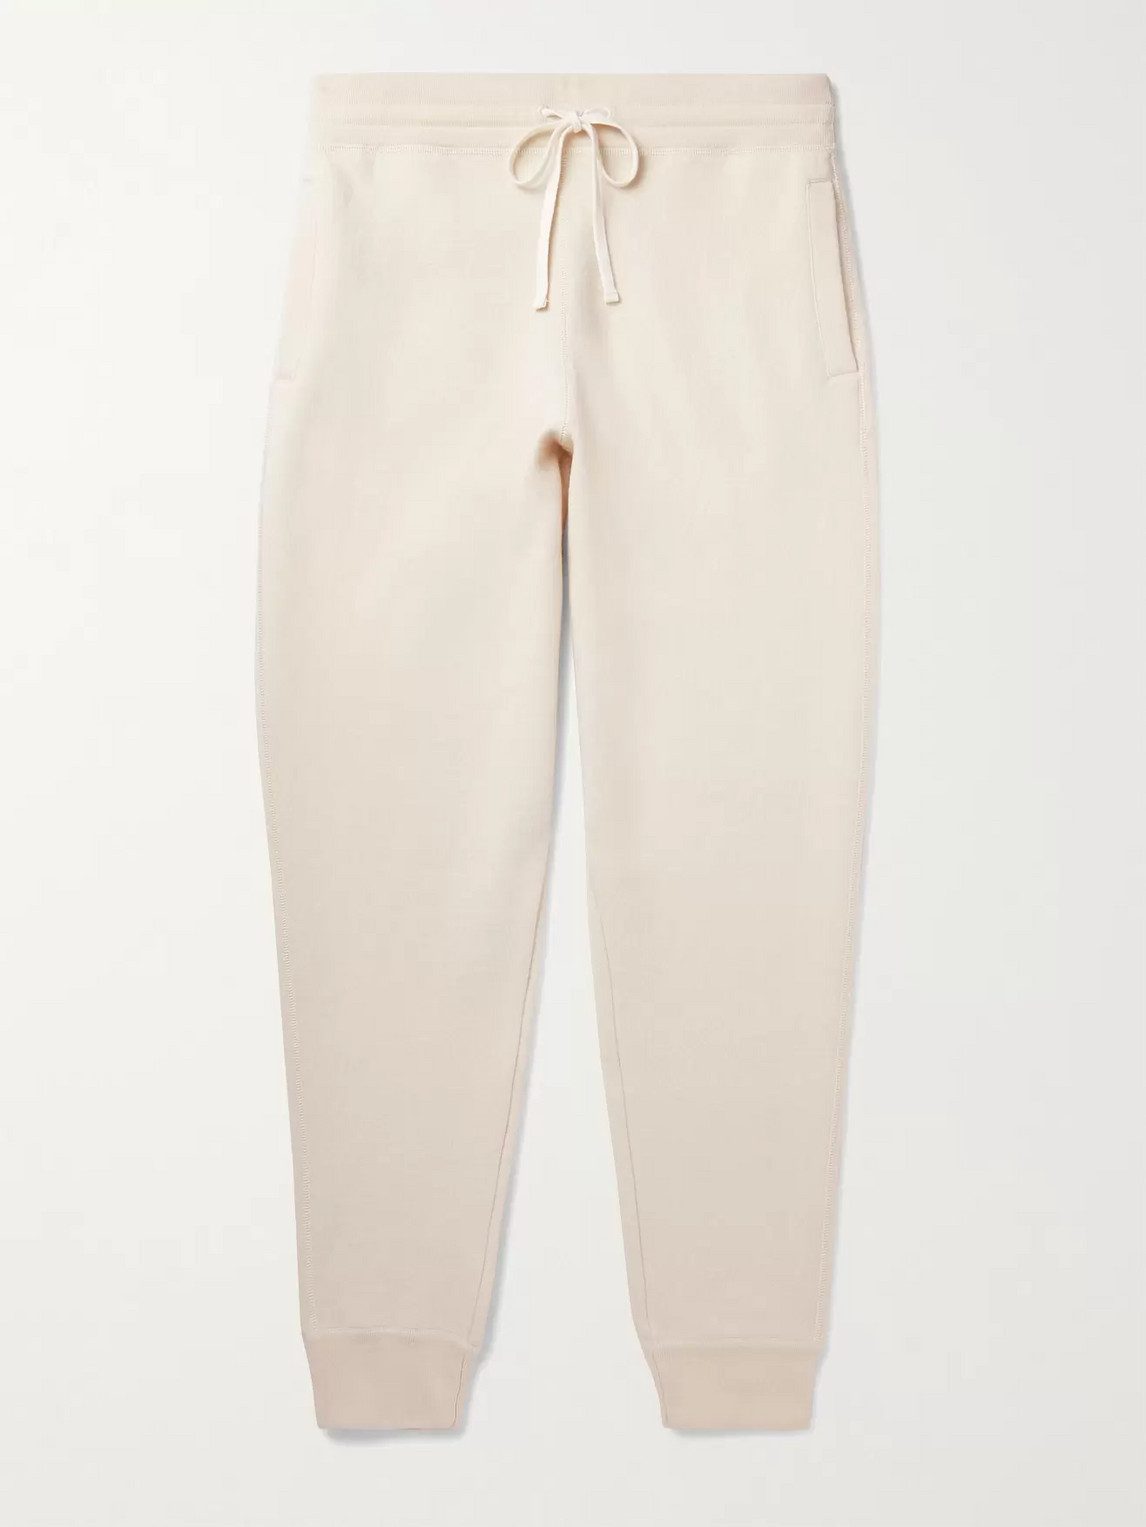 Tom Ford Tapered Cashmere-blend Sweatpants In Neutrals